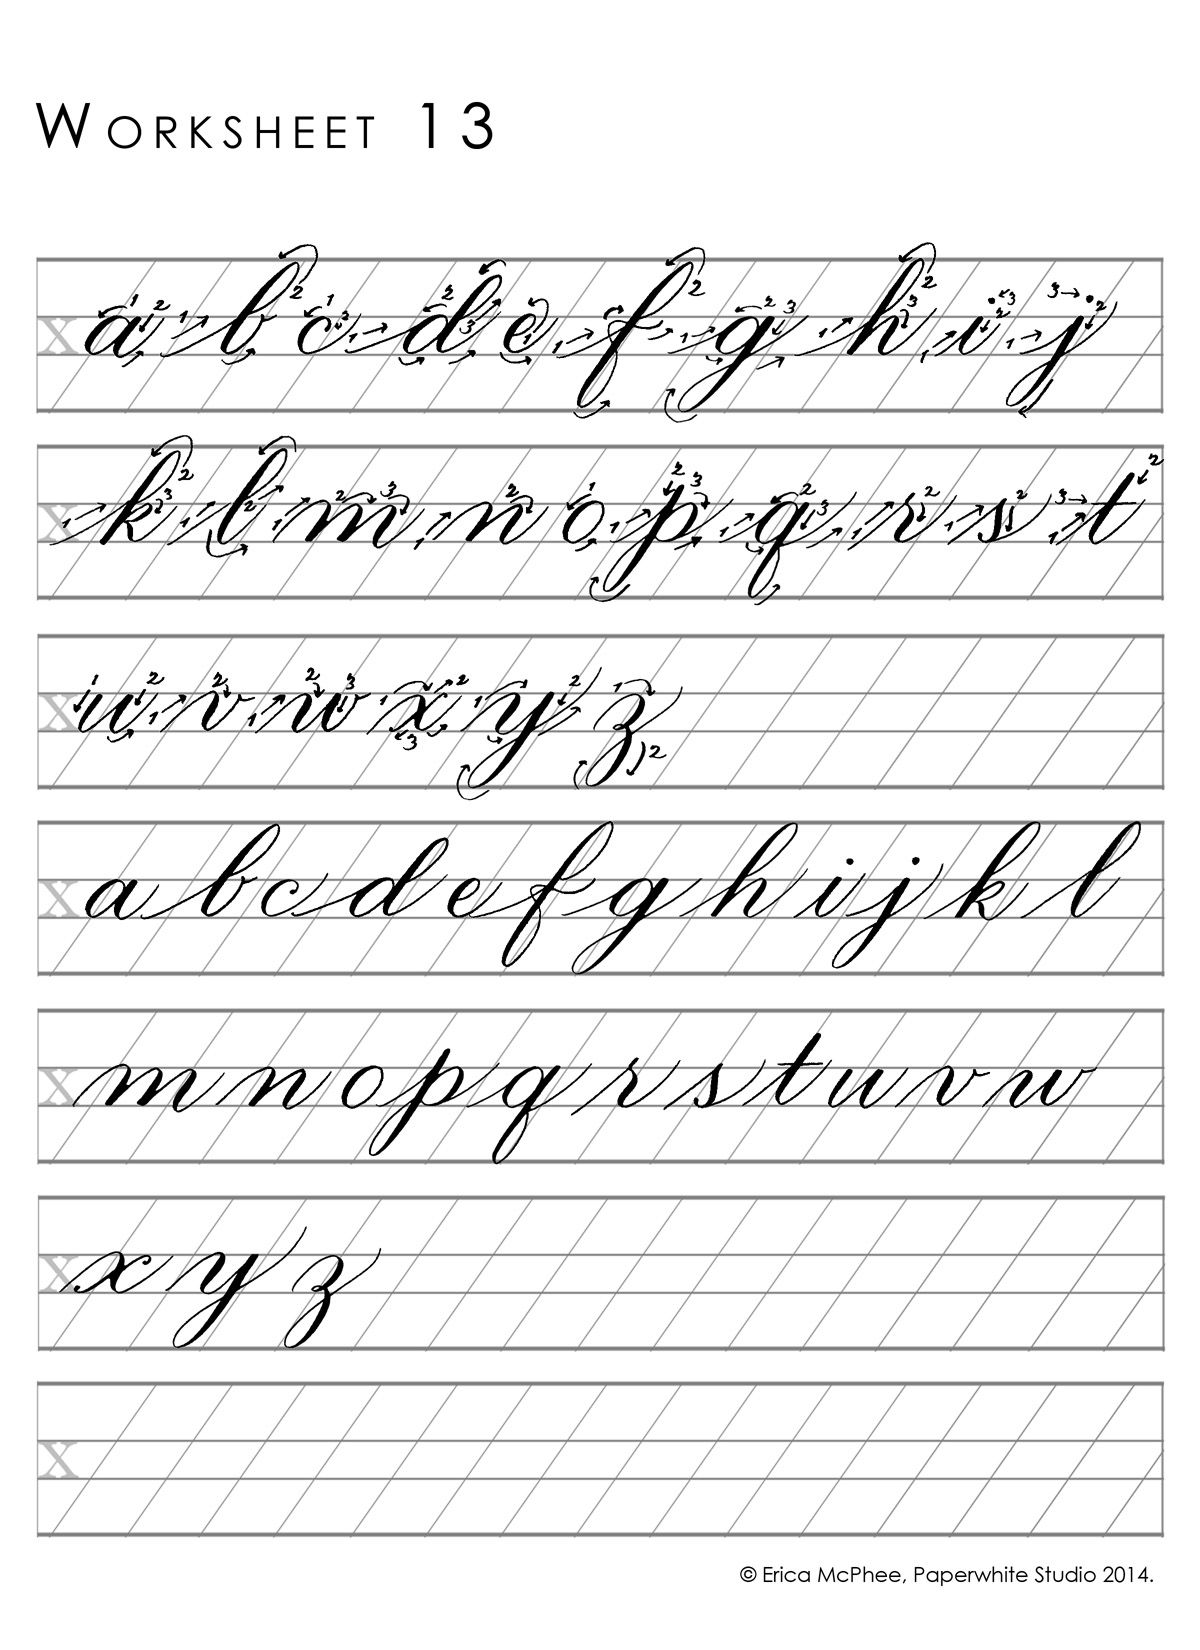 photo relating to Copperplate Calligraphy Alphabet Printable called Offers no cost impression add and internet hosting integration for